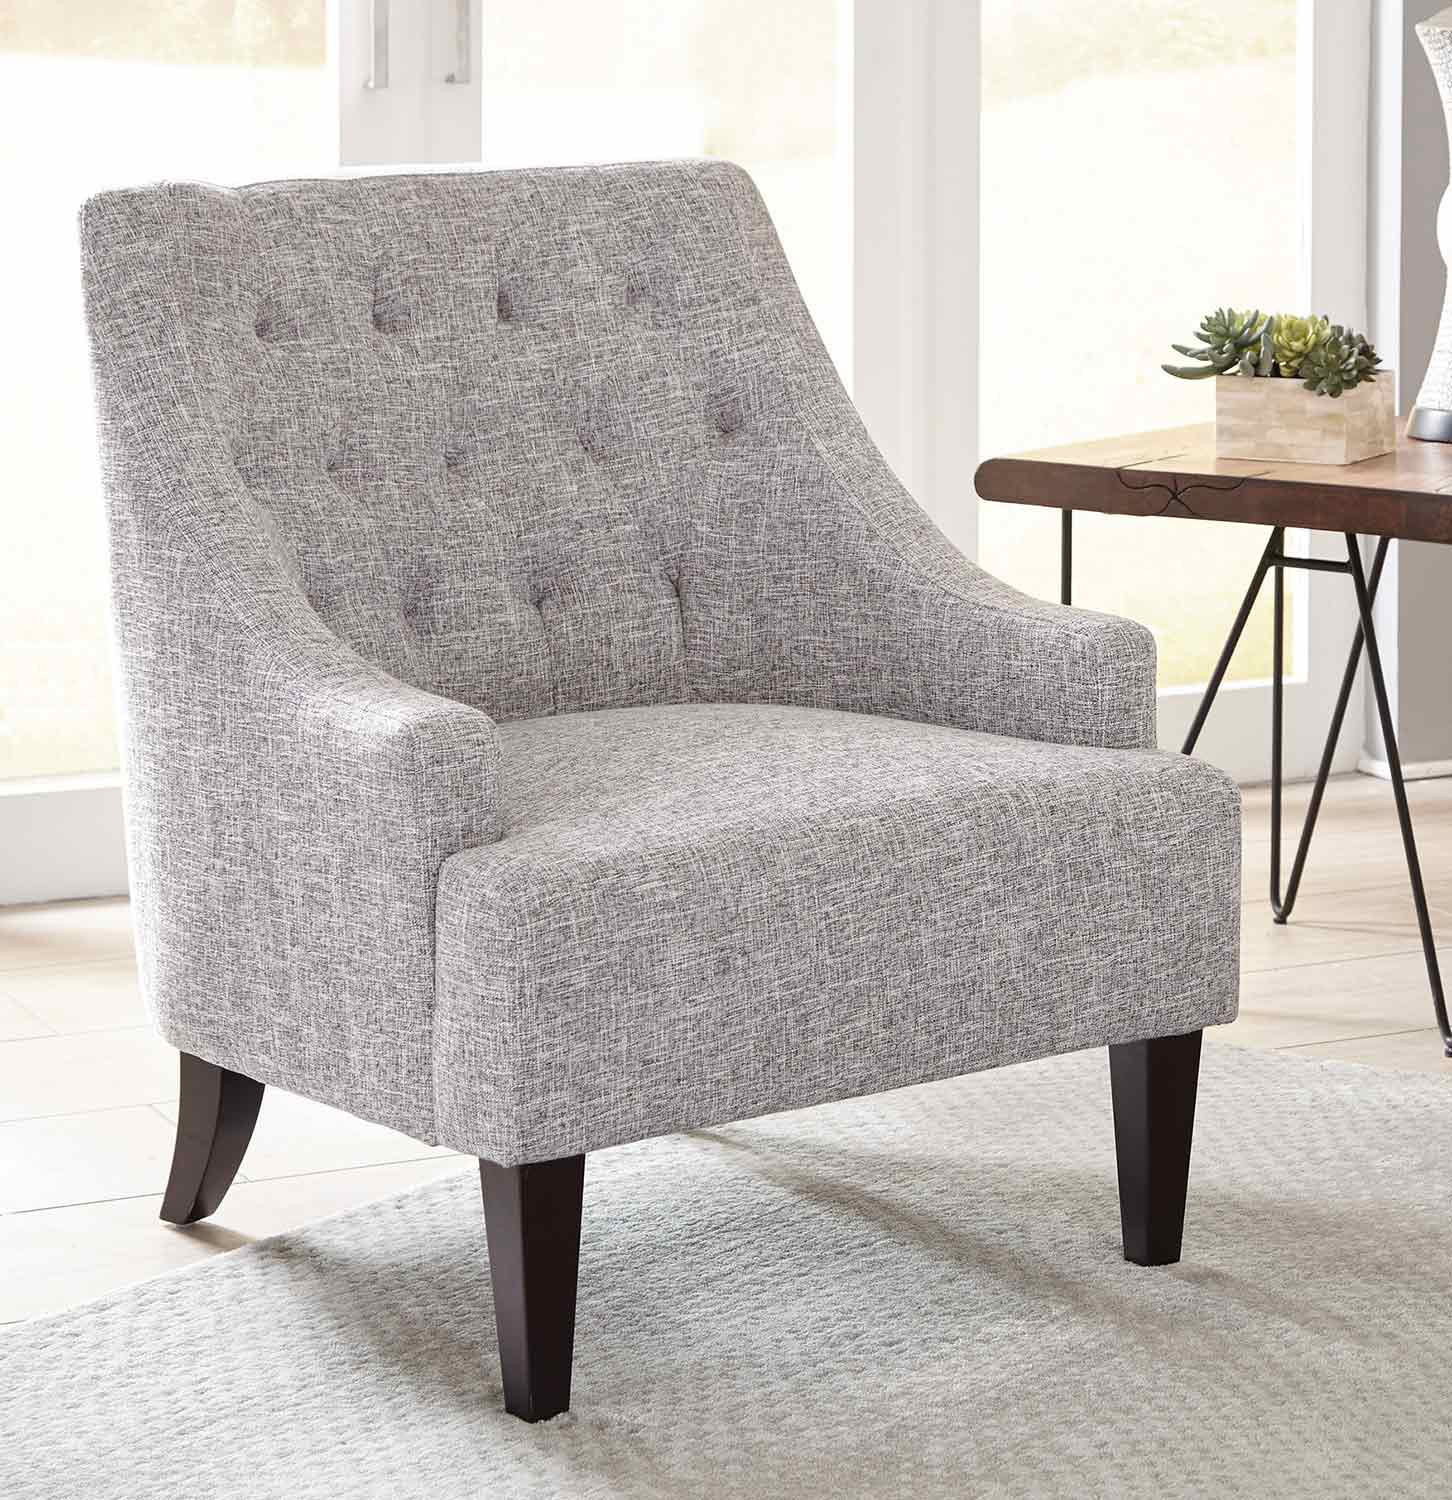 Coaster 904068 Accent Chair - Grey/Dark Brown